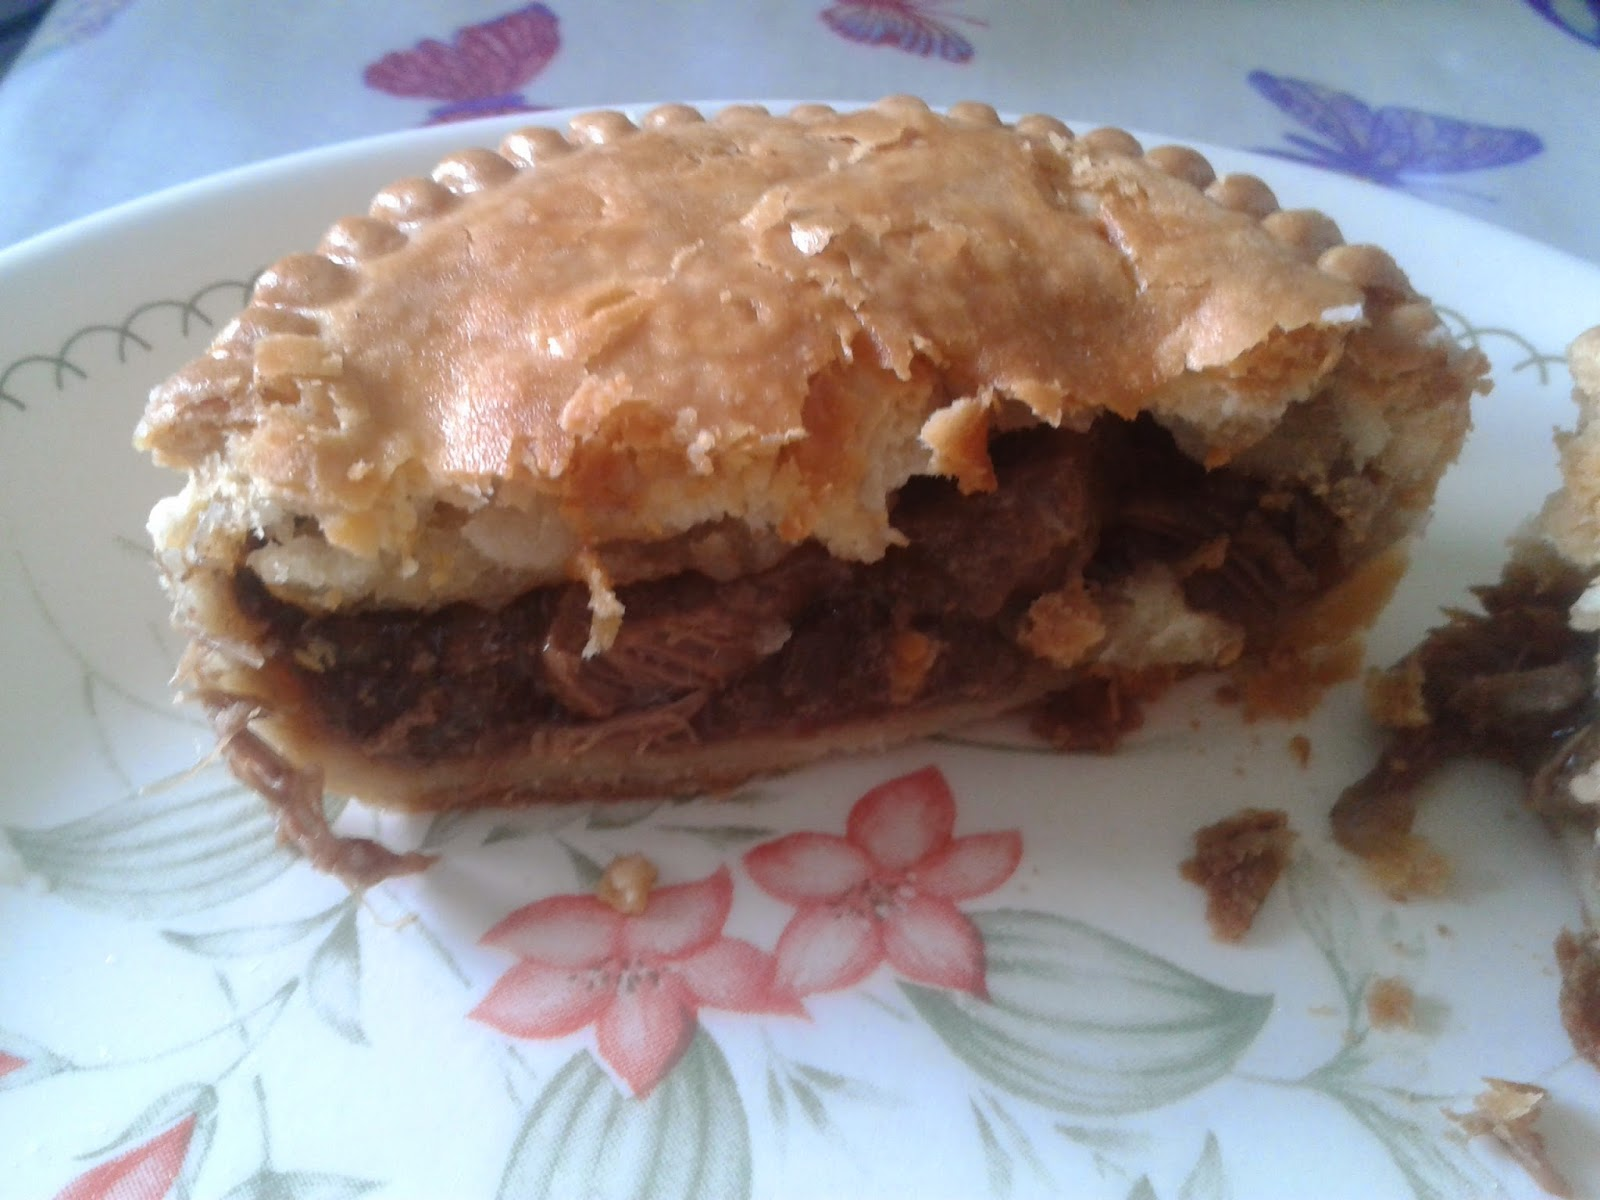 Pocklington's Steak Pie - Oven Cooked Edition Pie Review